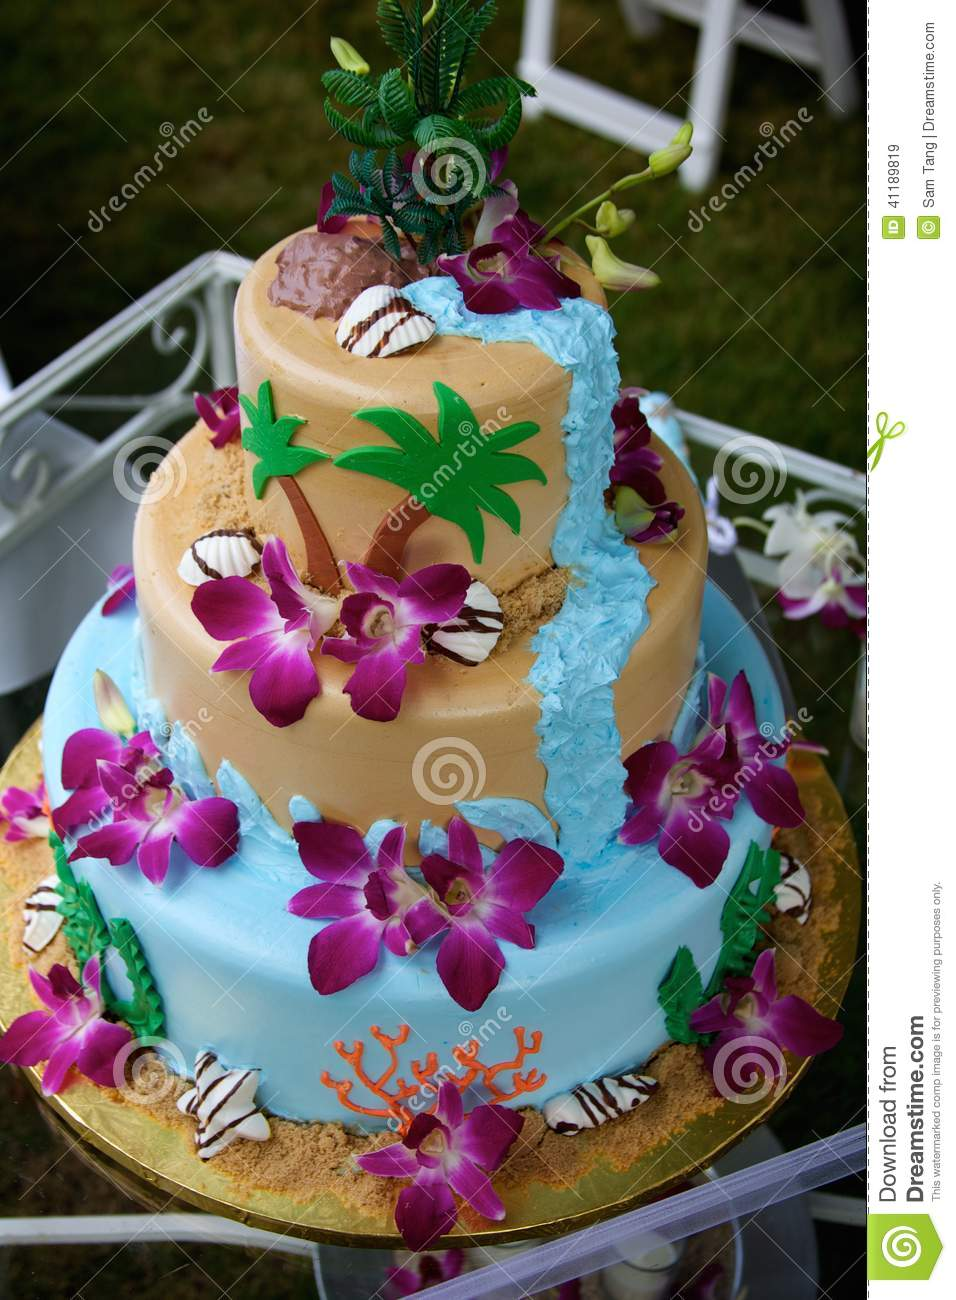 Fun Tropical Beach Wedding Cake Stock Photo Image 41189819